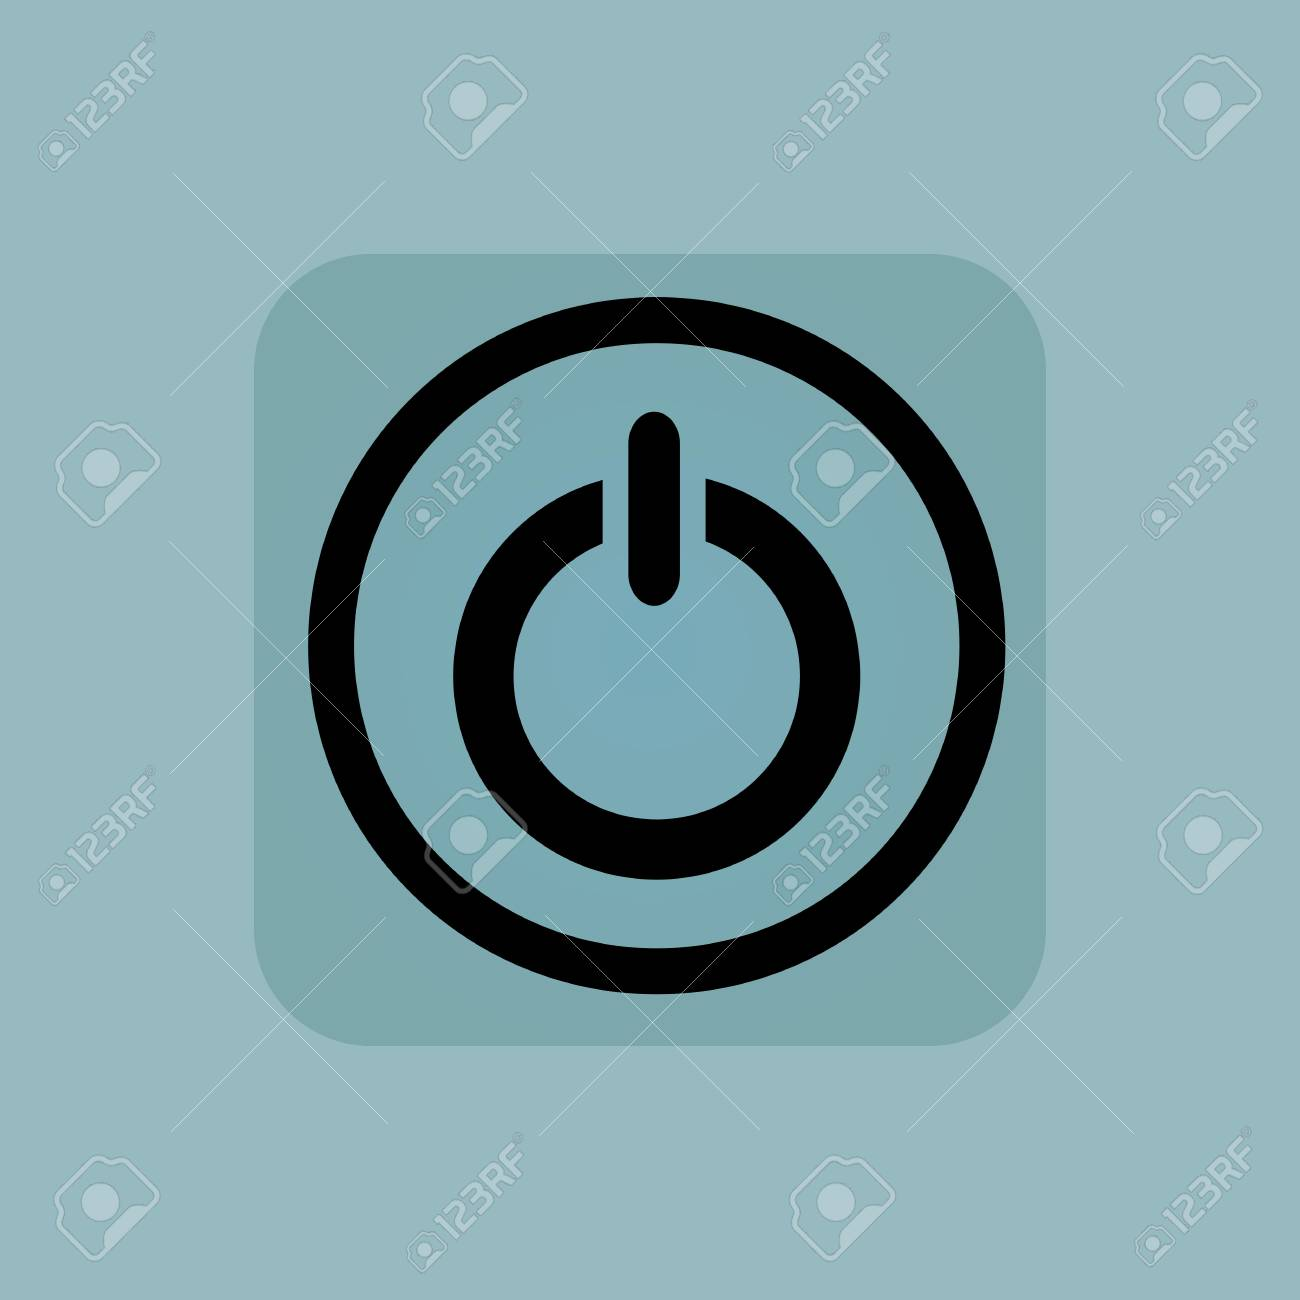 Power Symbol In Circle In Square On Pale Blue Background Royalty